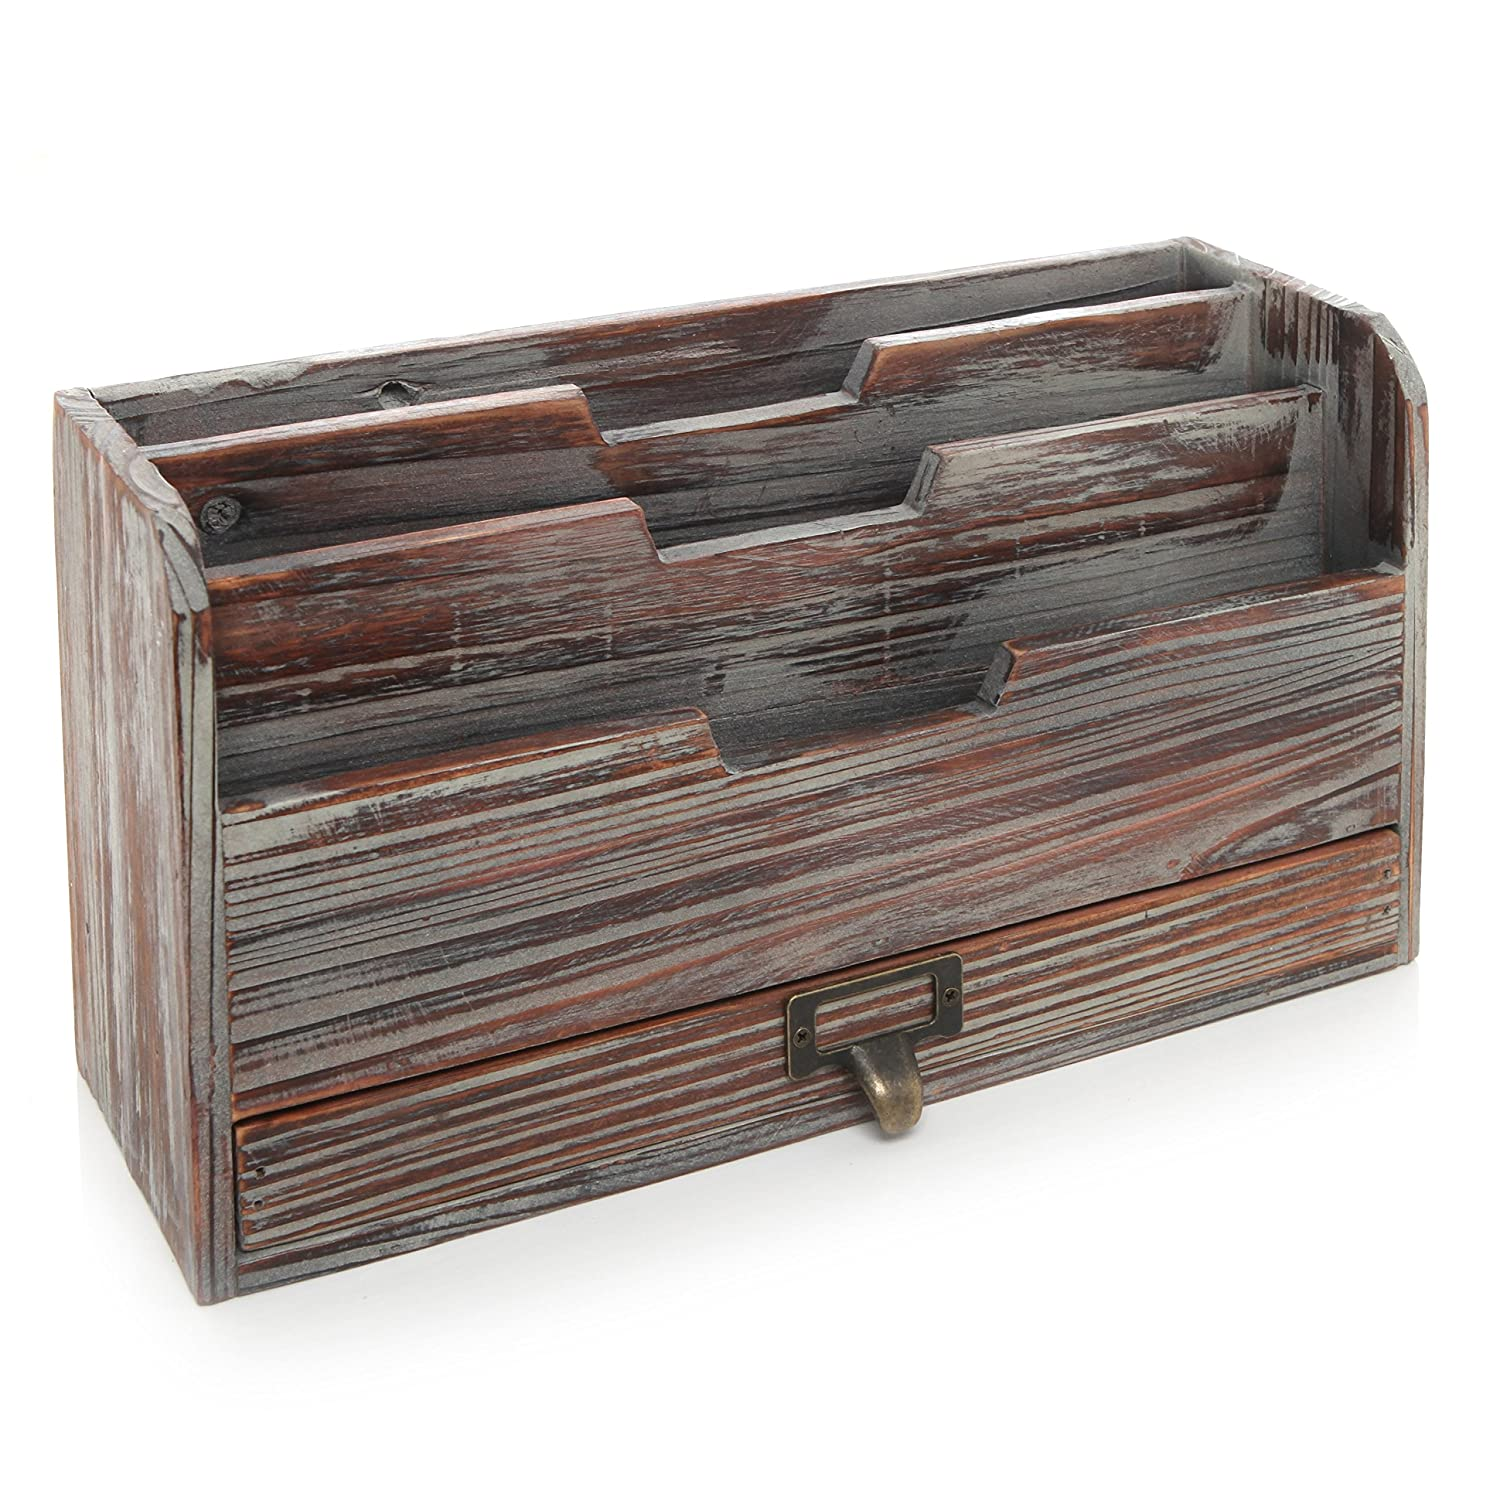 amazoncom  tier country rustic torched wood office desk file  - amazoncom  tier country rustic torched wood office desk file organizermail sorter tray holder w storage drawer home  kitchen